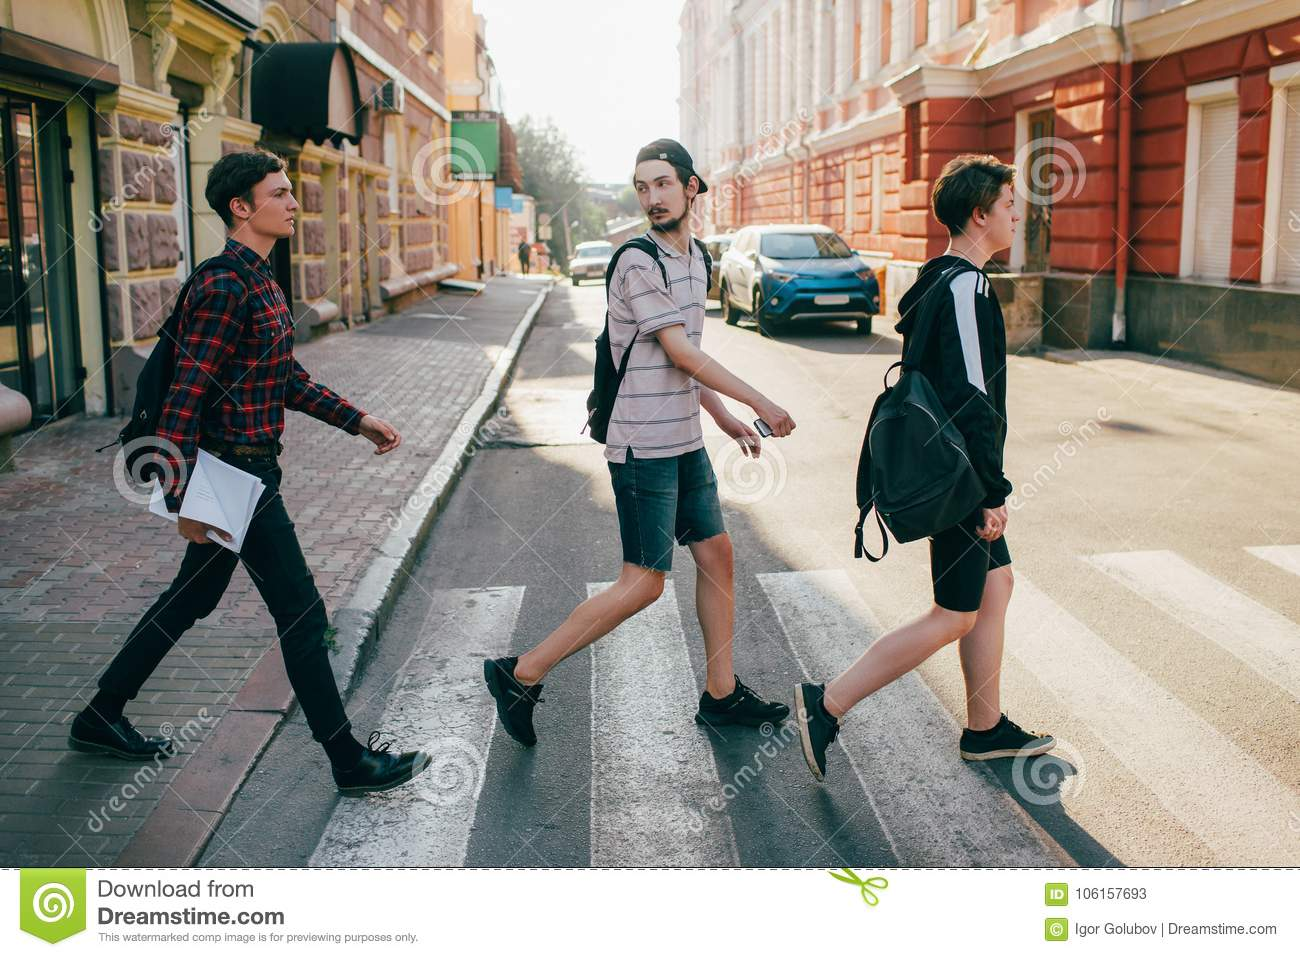 Teenage and street